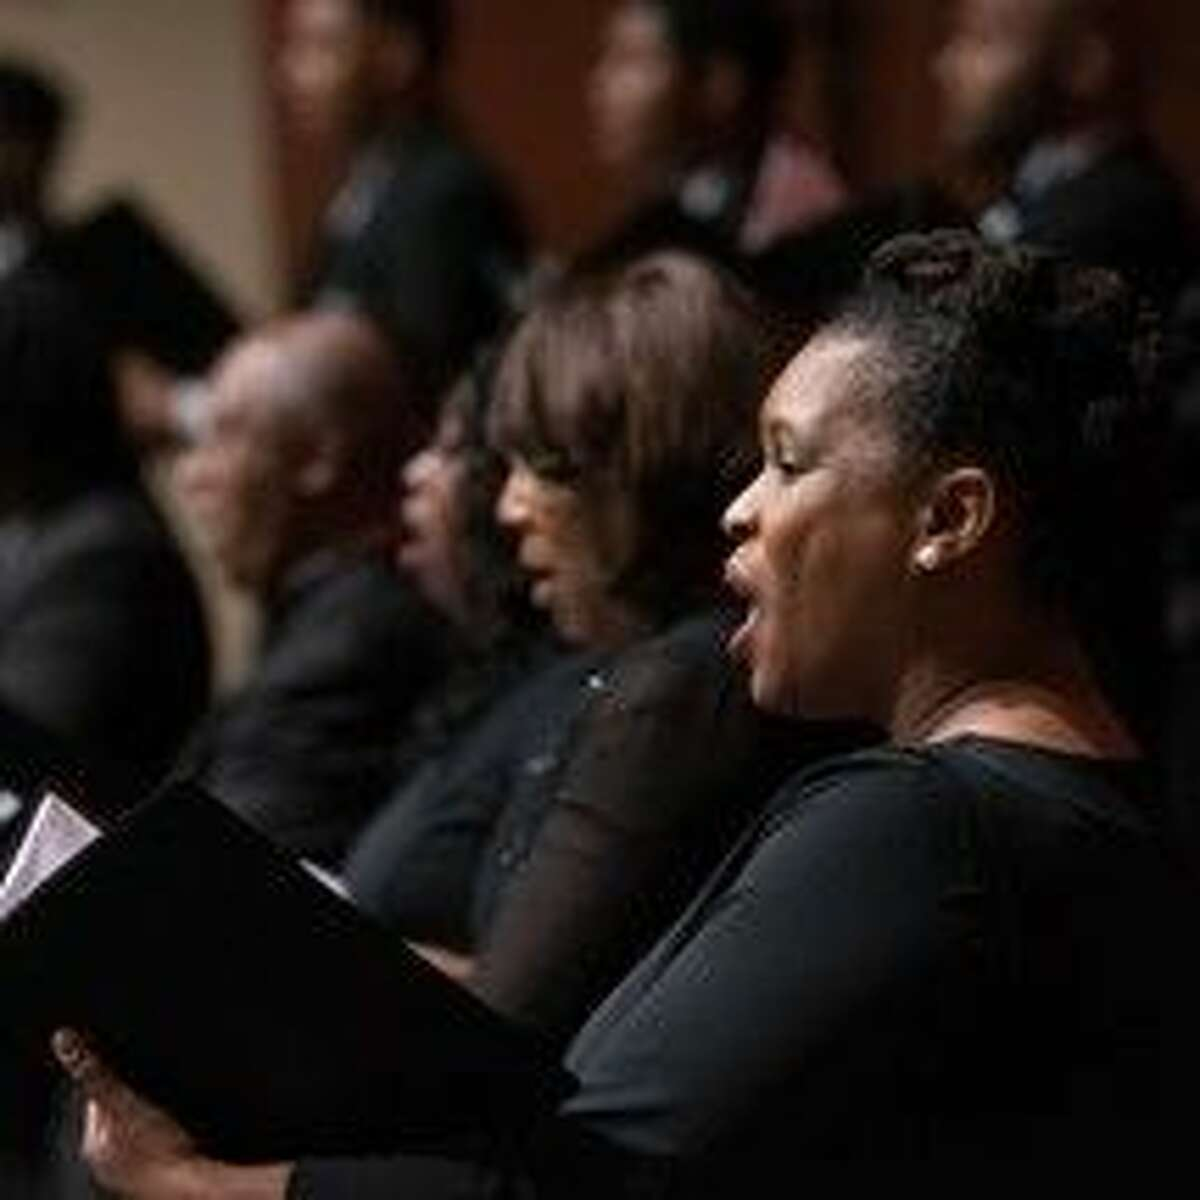 The Houston Symphony will give the gift of music to Houston families this holiday season with a free community concert on Thursday, Dec. 10, at The Church Without Walls.